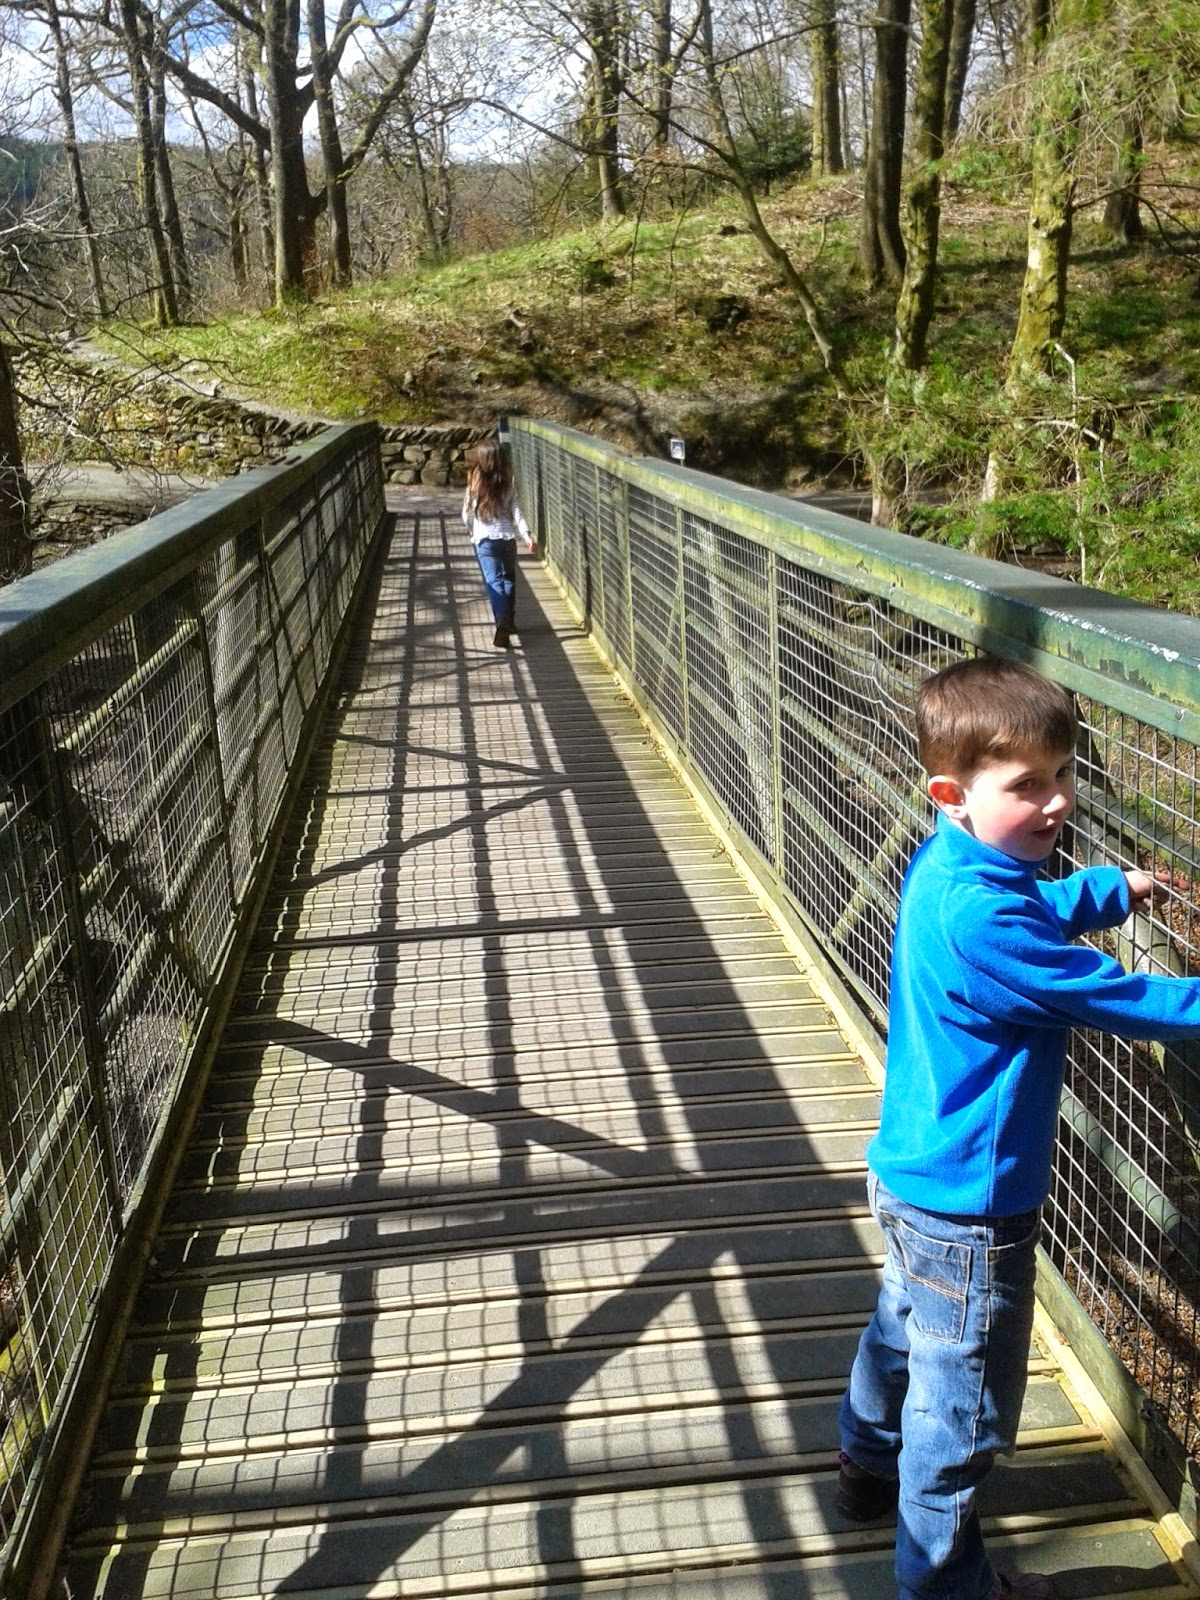 Grizedale Forest Gruffalo trail, nope not on the bridge.